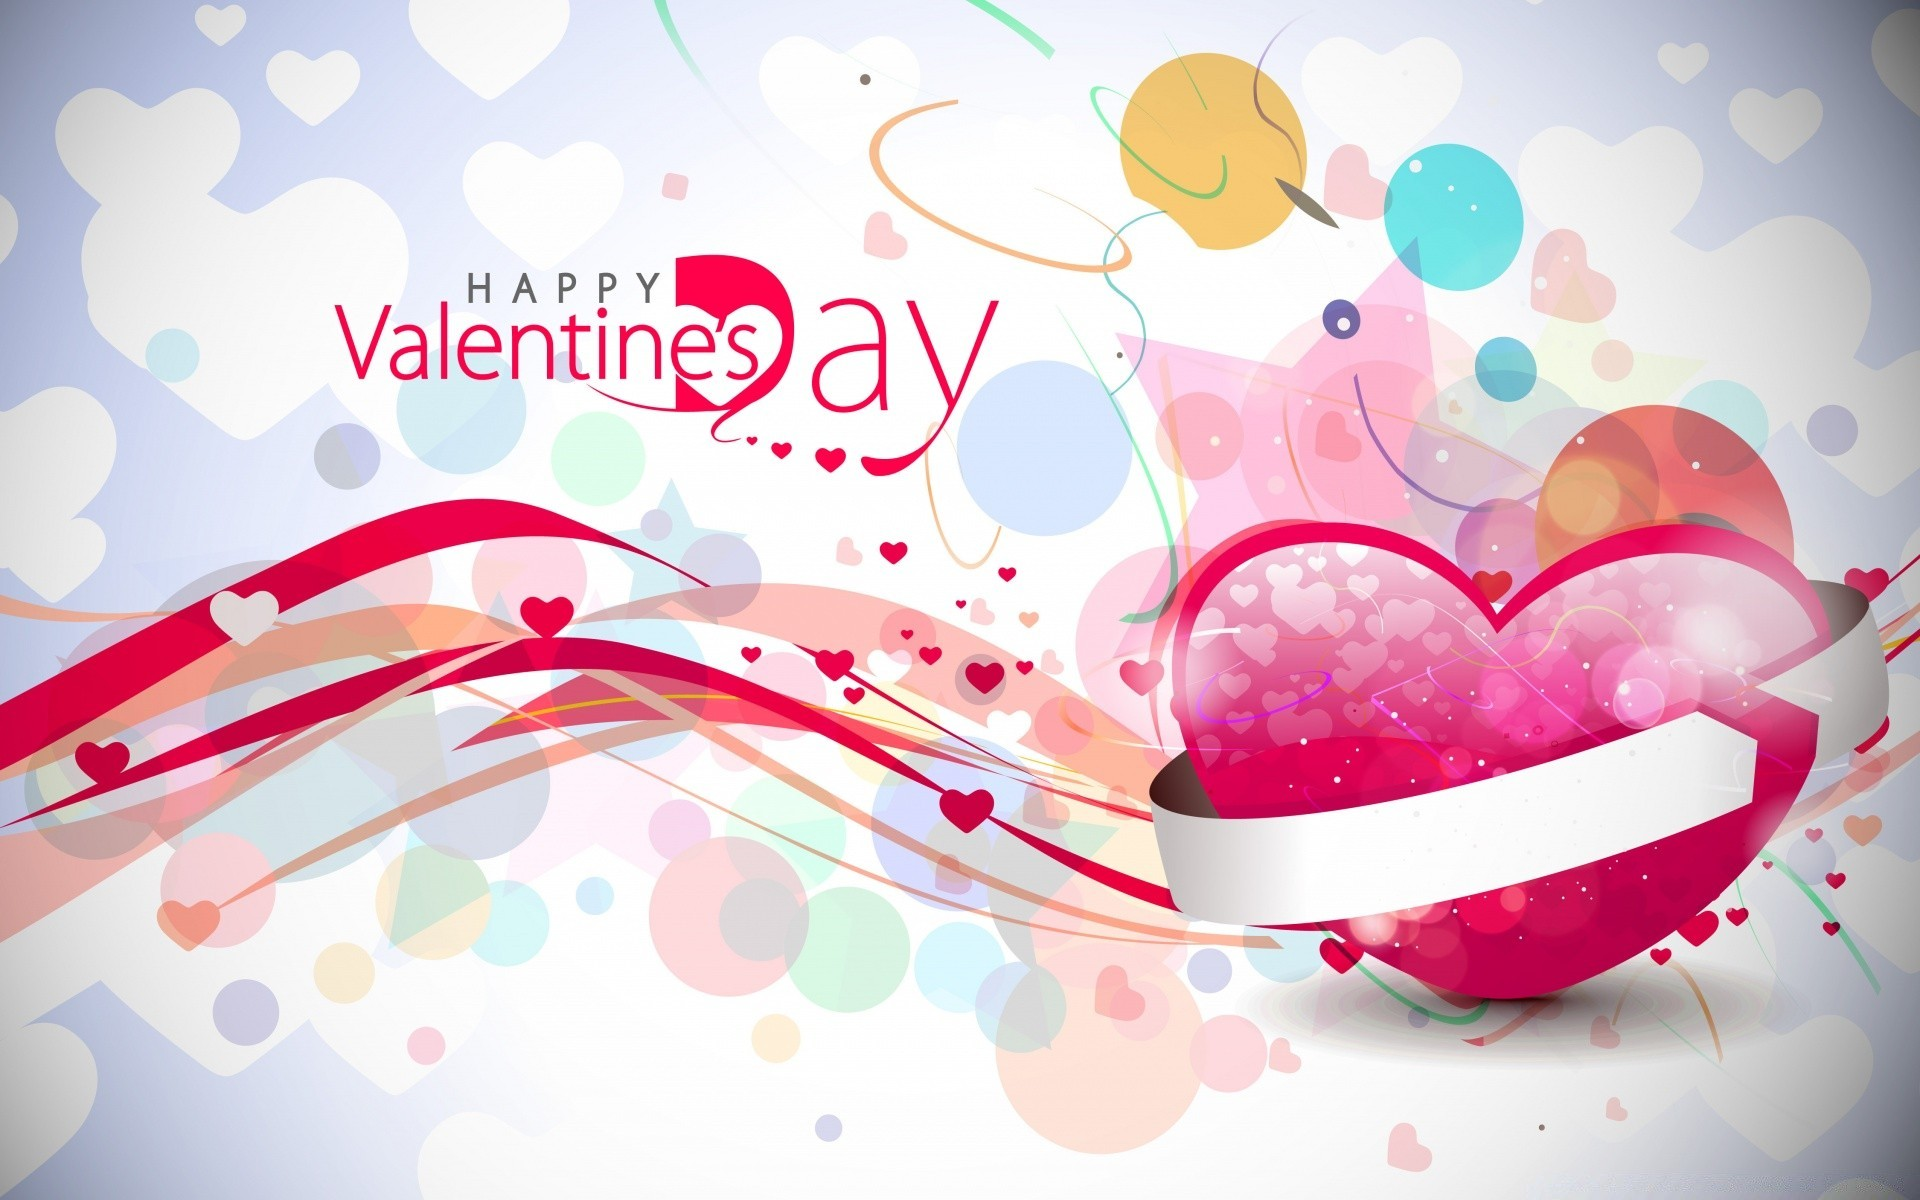 Valentines Day Background Iphone Wallpapers For Free